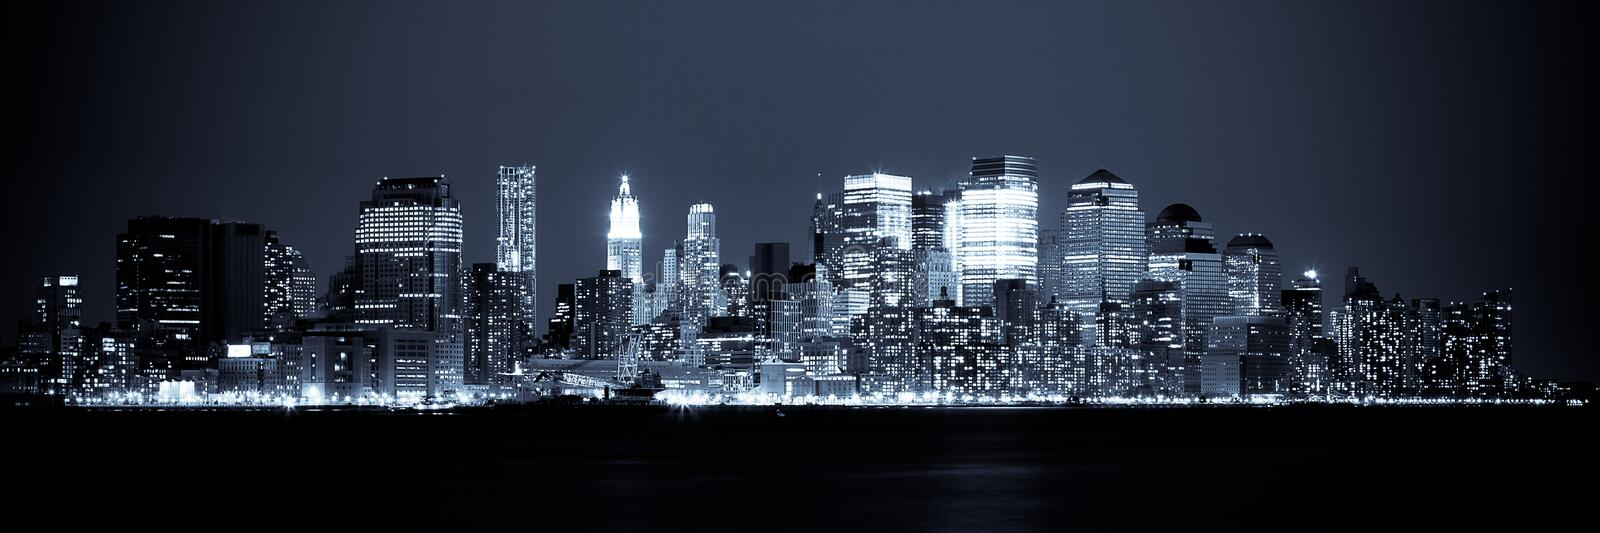 Vue de New York d'horizon de Manhattan par nuit photographie stock libre de droits